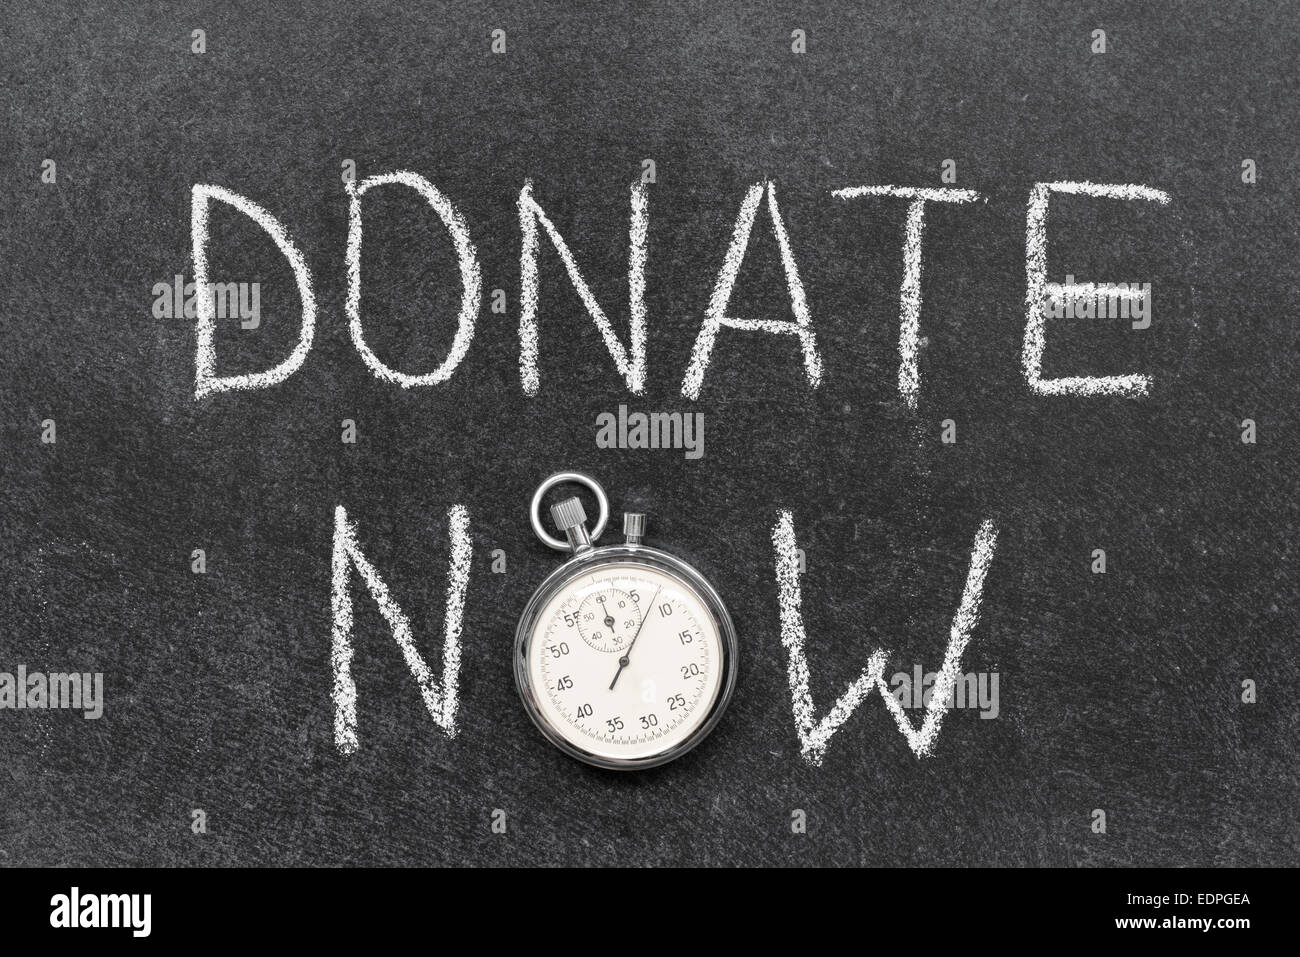 donate now concept handwritten on chalkboard with vintage precise stopwatch used instead of O - Stock Image